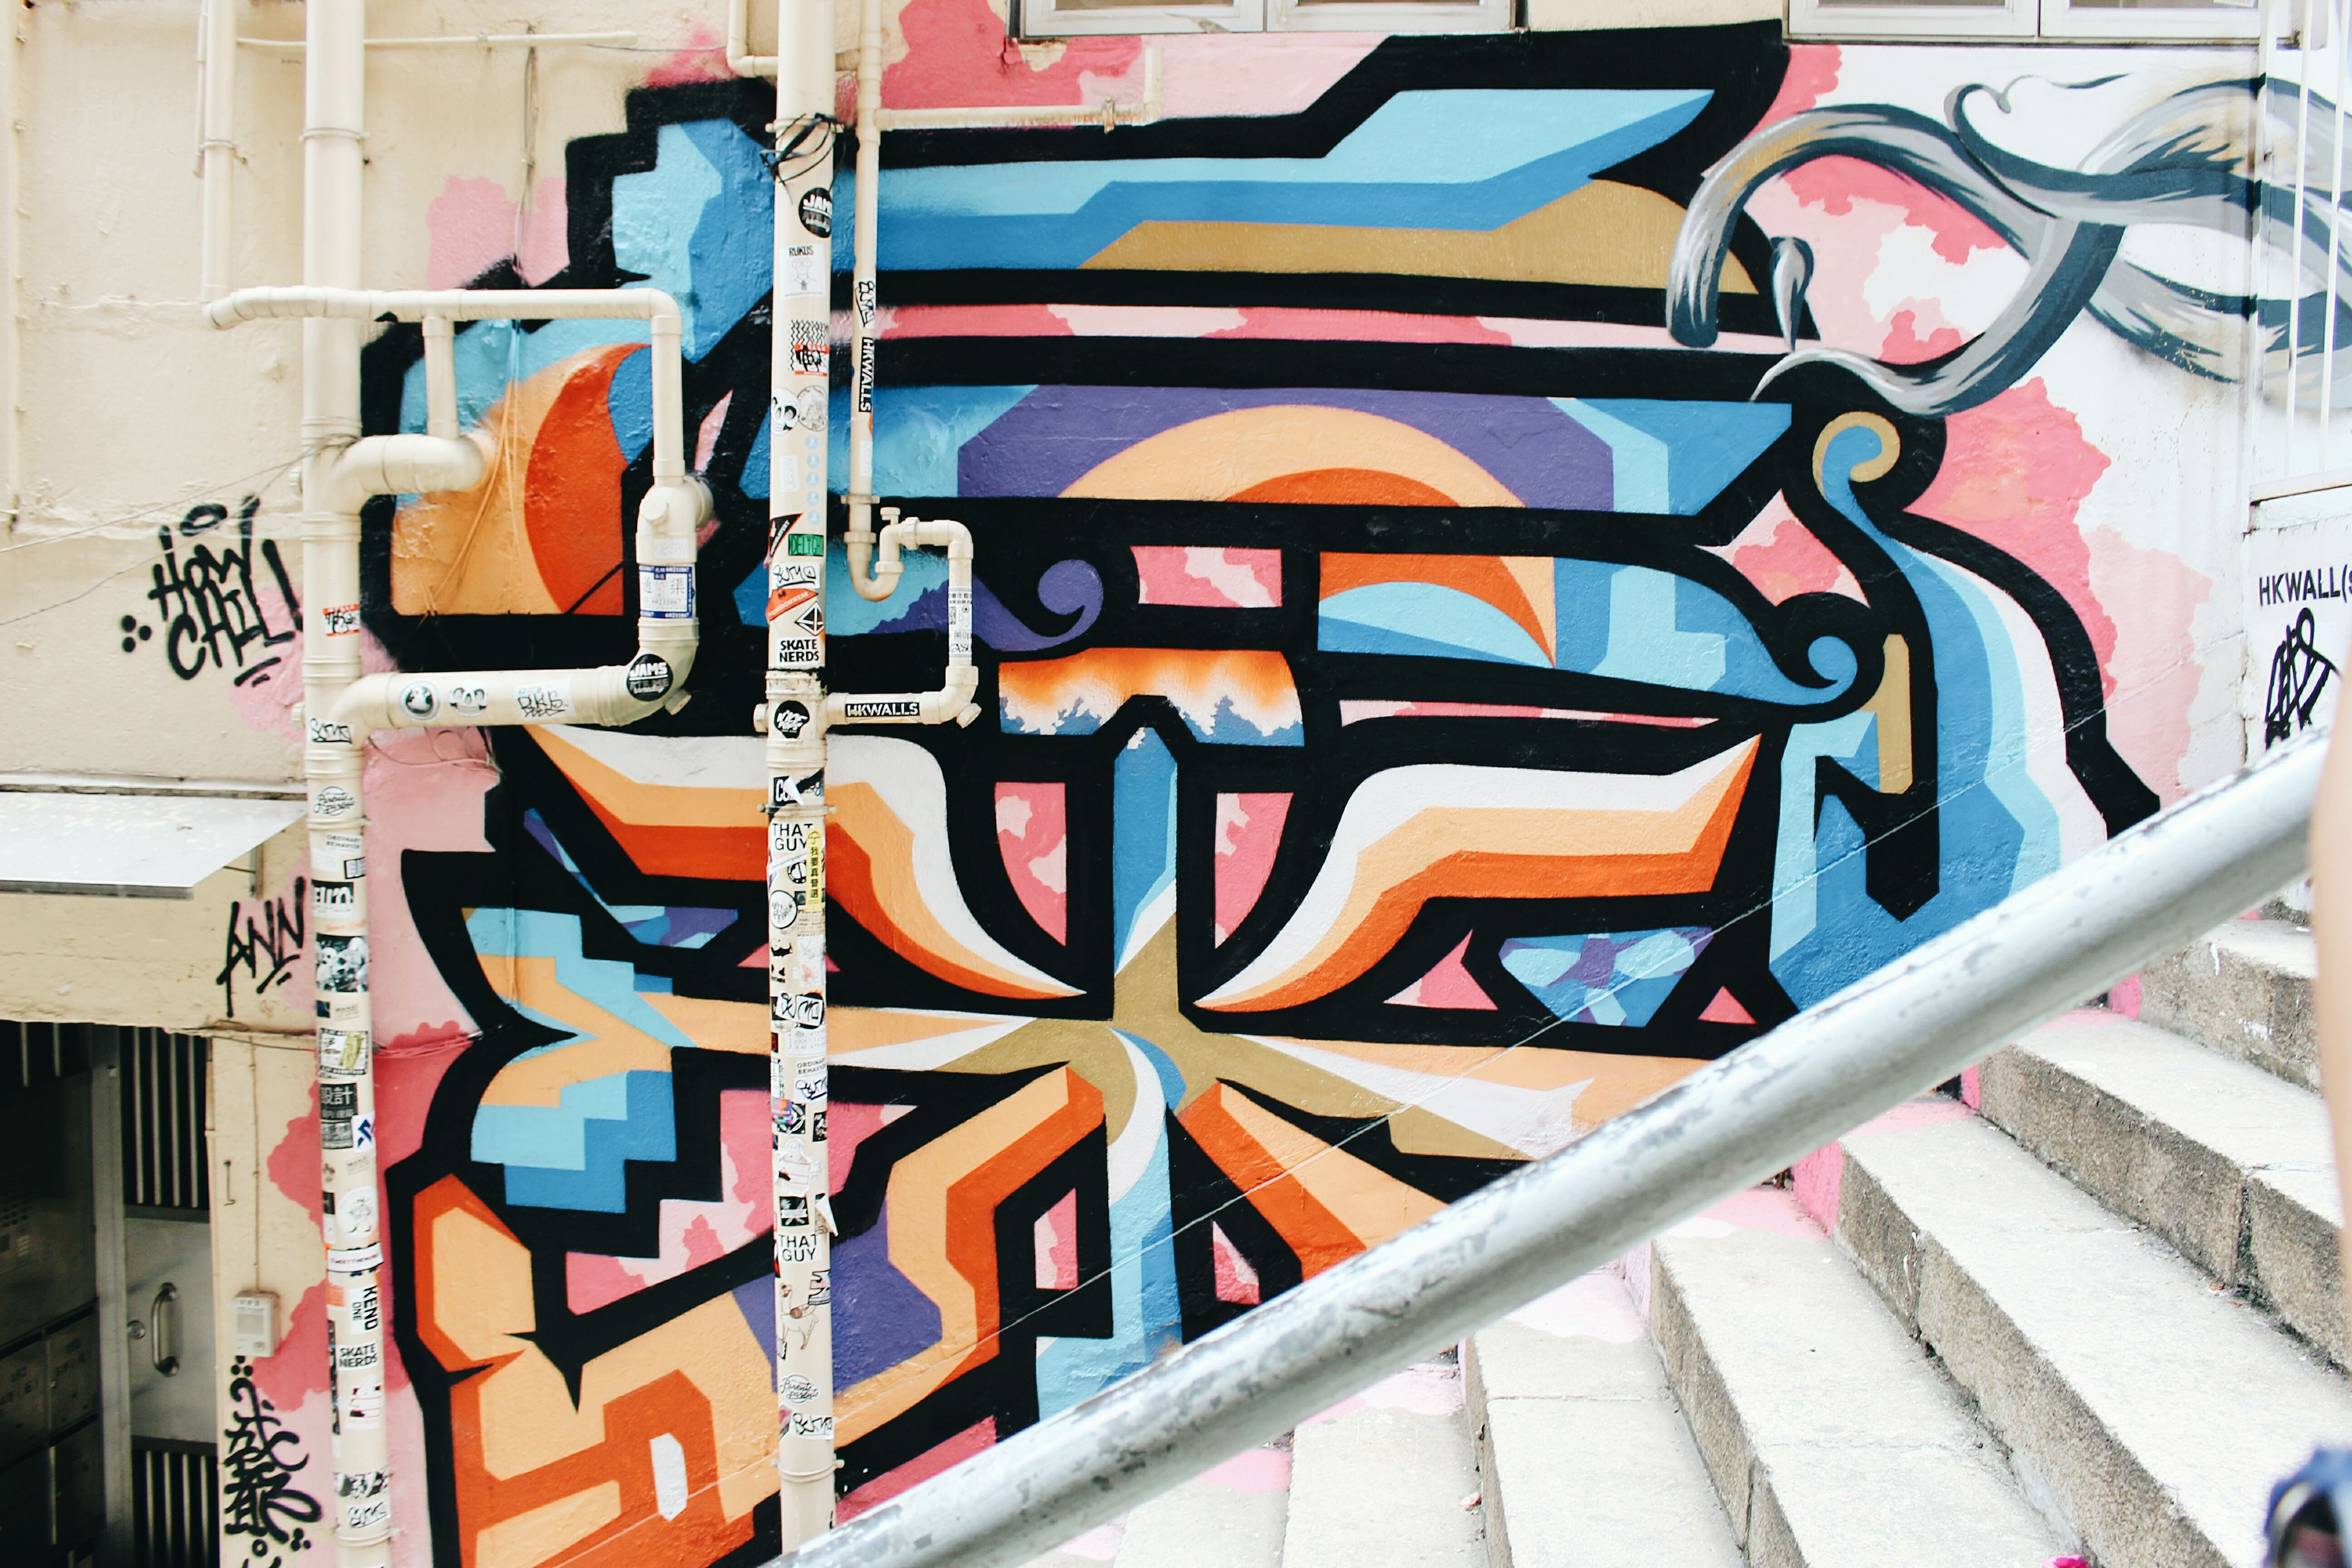 architecture, built structure, building exterior, wall - building feature, graffiti, art, art and craft, creativity, pattern, building, design, window, wall, day, railing, brick wall, no people, outdoors, multi colored, low angle view